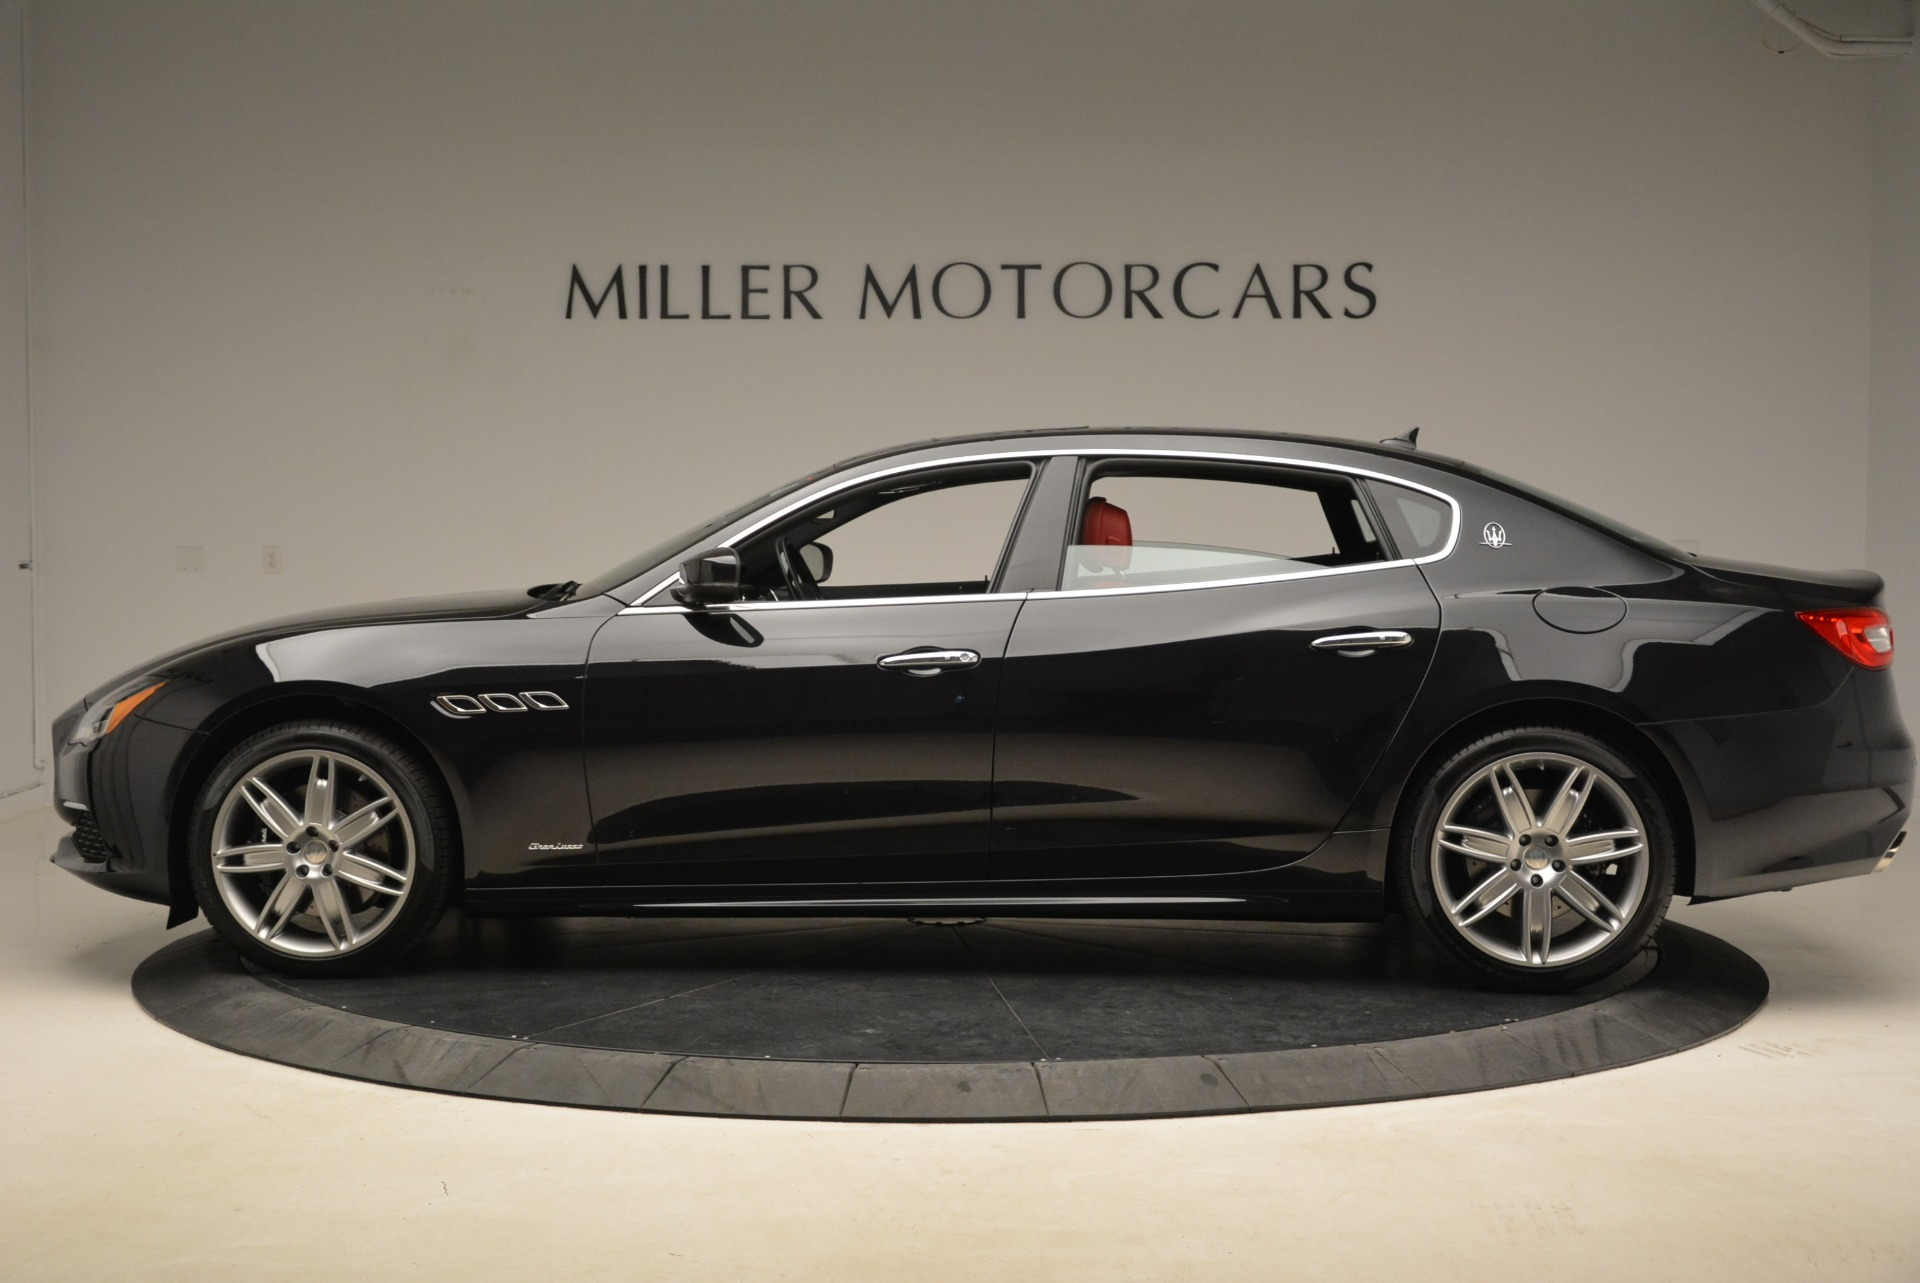 New 2018 Maserati Quattroporte S Q4 GranLusso For Sale In Greenwich, CT 2293_p3